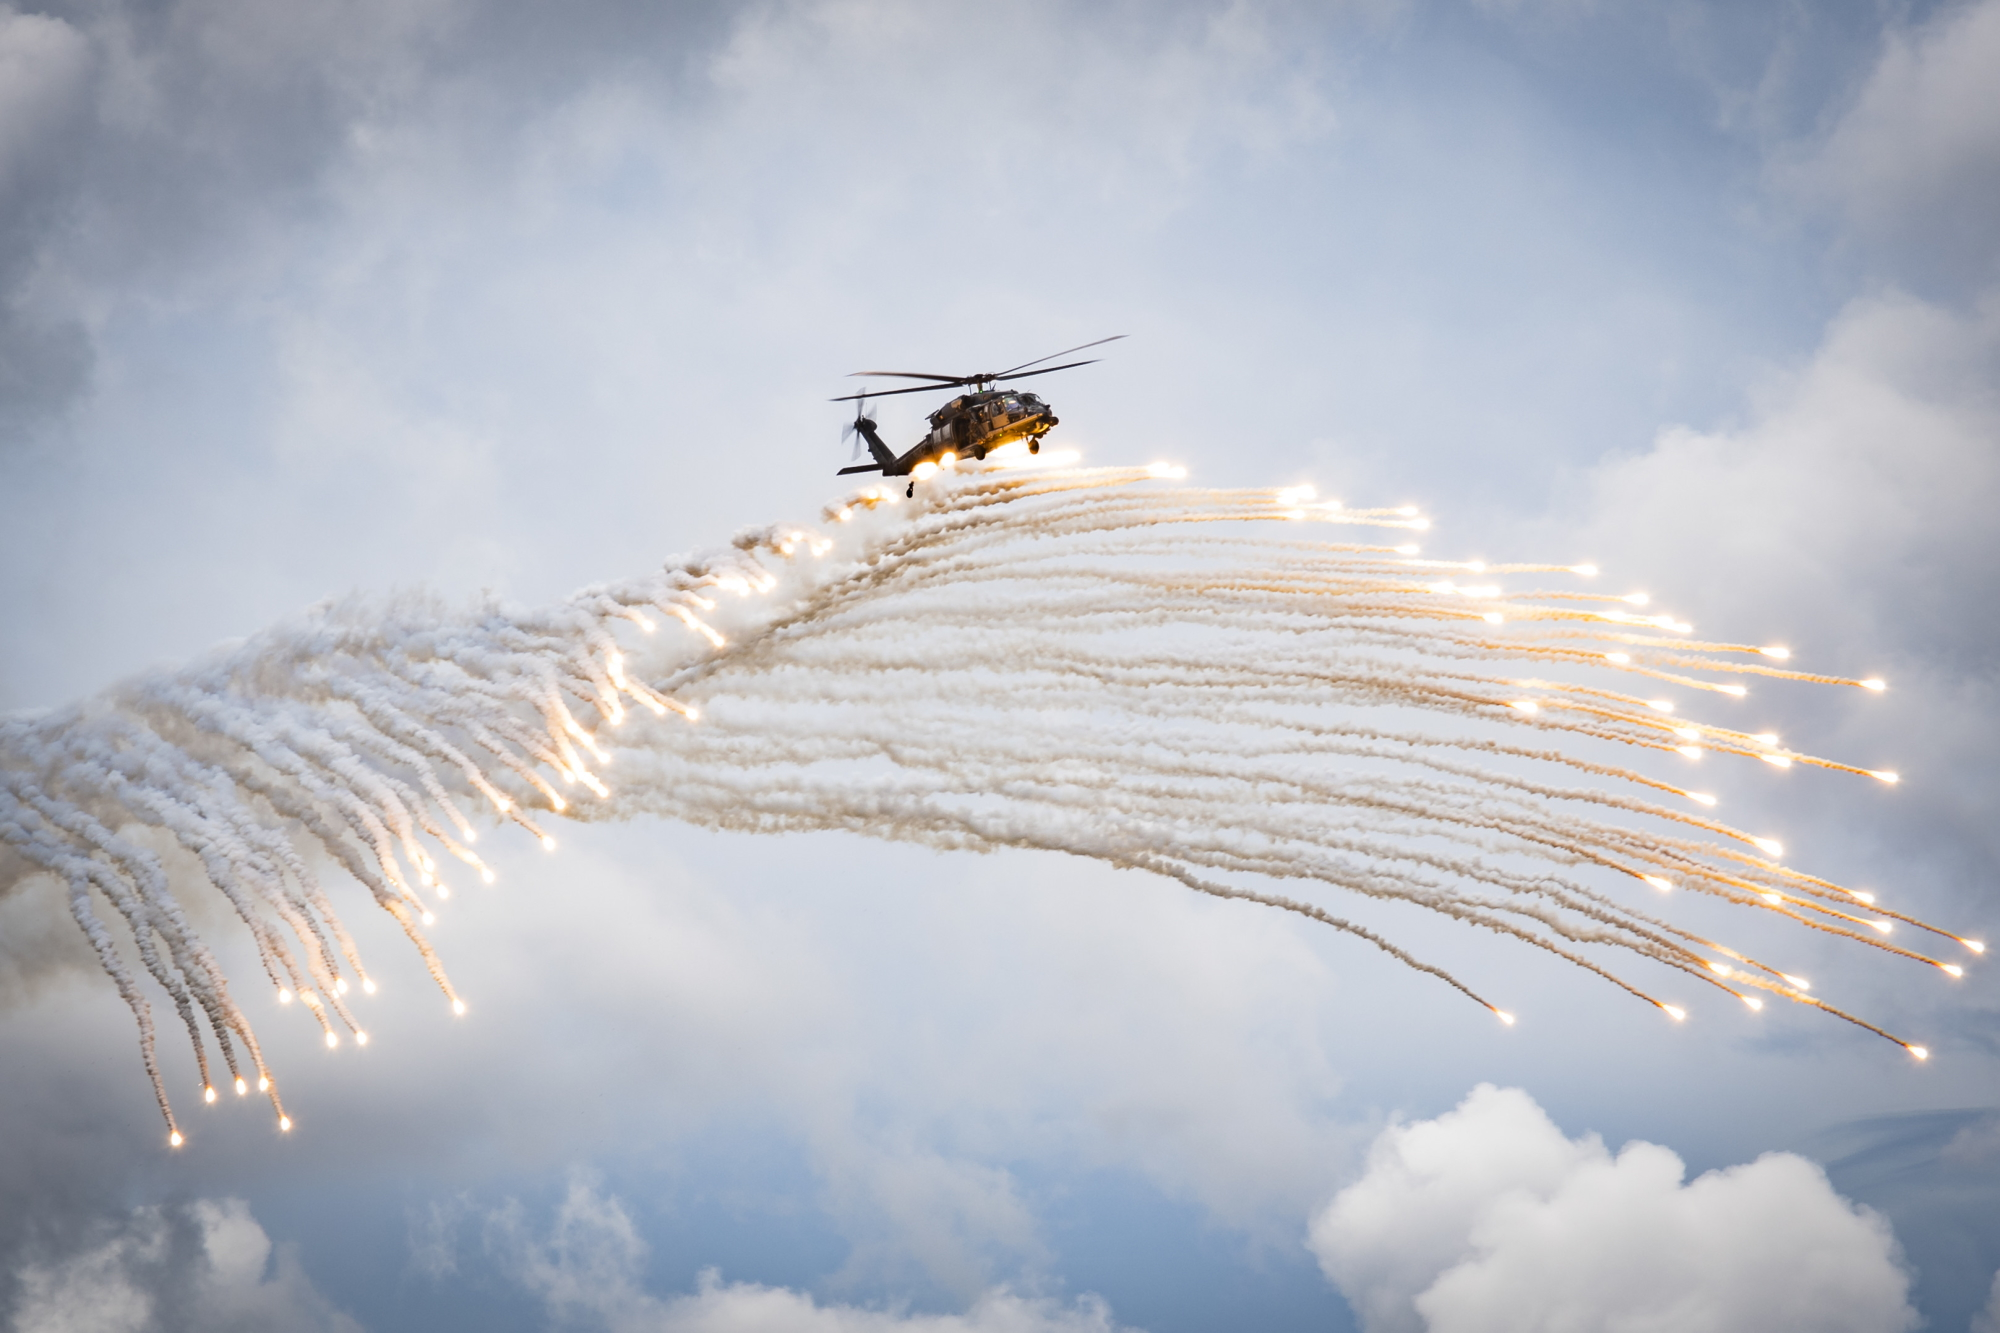 Airmen assigned to the 347th Rescue Group drop flares during a fini flight for Col. Bryan Creel, 347th RQG commander, June 5, 2020, at Moody Air Force Base, Ga. The fini flight is a long-standing Air Force tradition that occurs when a pilot departs from the base. Creel will move on to Incirlik Air Base, Turkey, where he will command the 39th Air Base Wing. (Senior Airman Hayden Legg/Air Force)